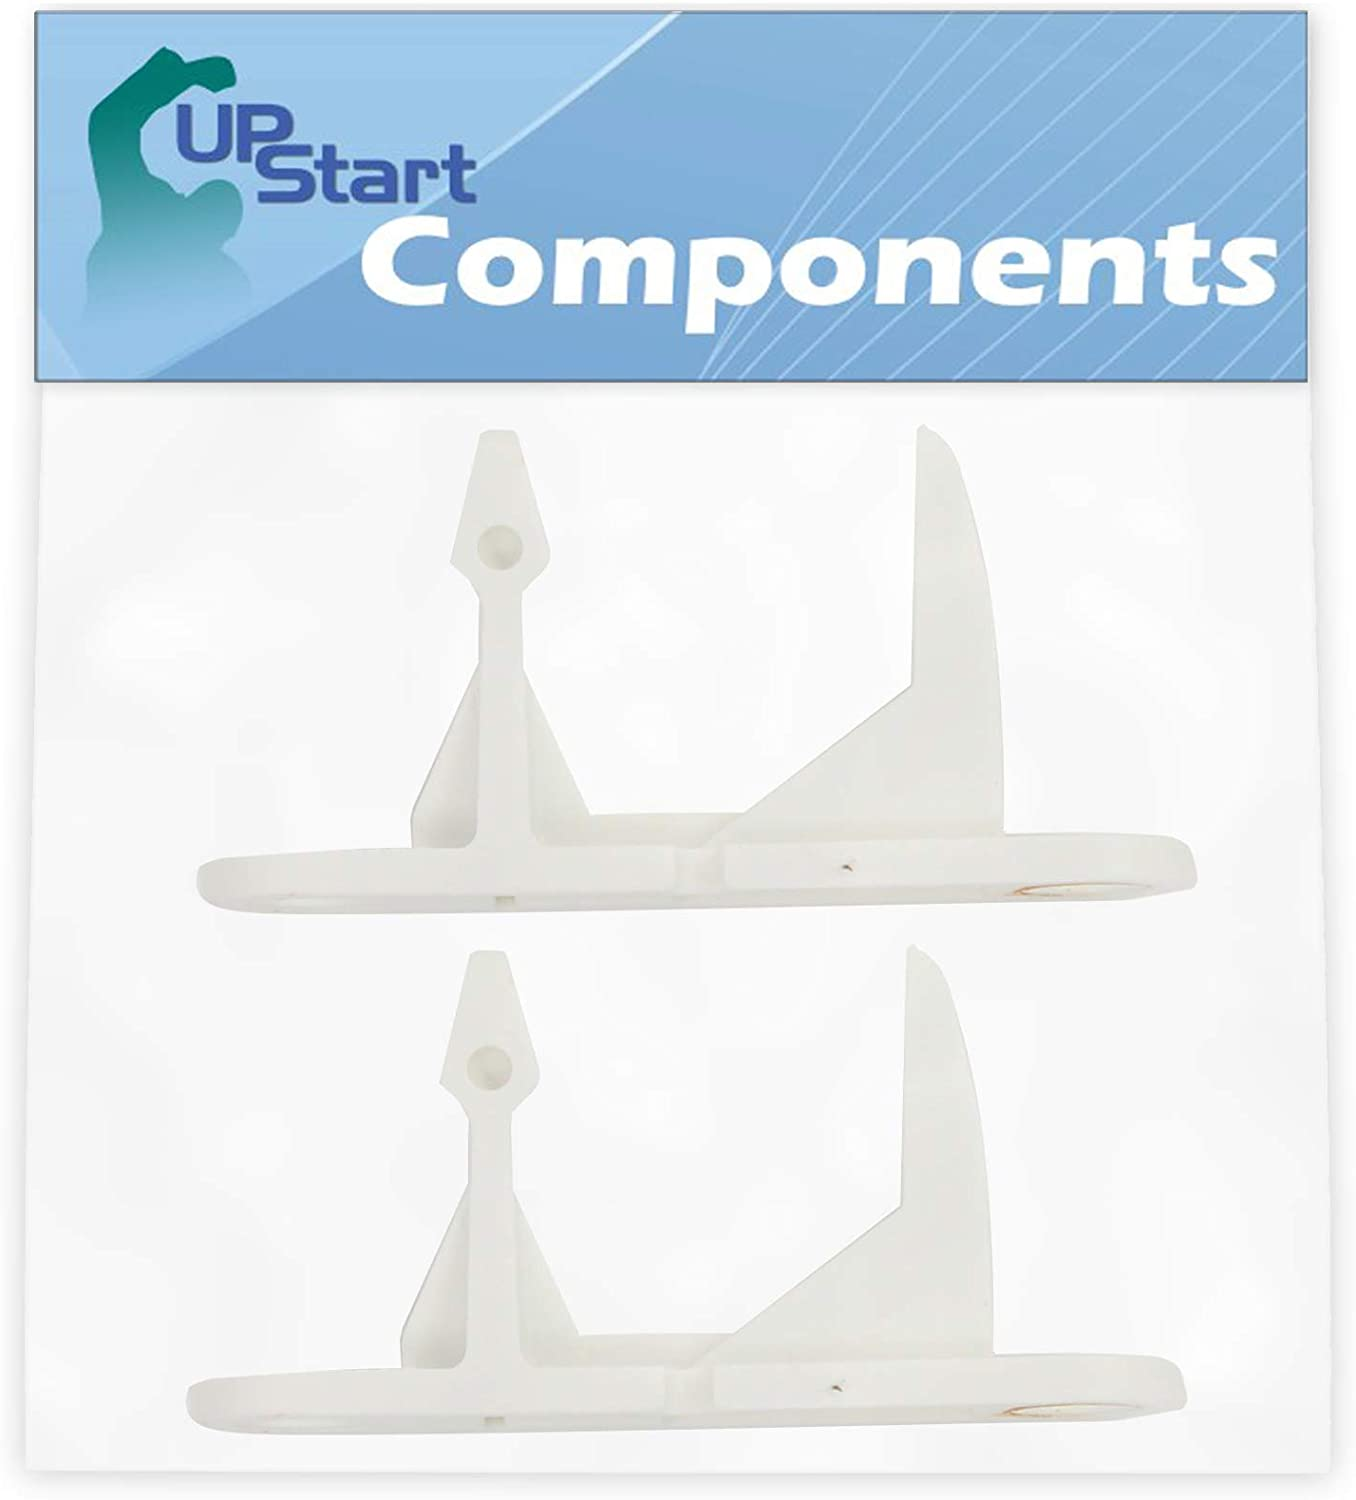 2-Pack 131763310 Washer Door Striker Replacement for Kenmore/Sears 41742042100 Washing Machine - Compatible with 134456600 Door Strike - UpStart Components Brand